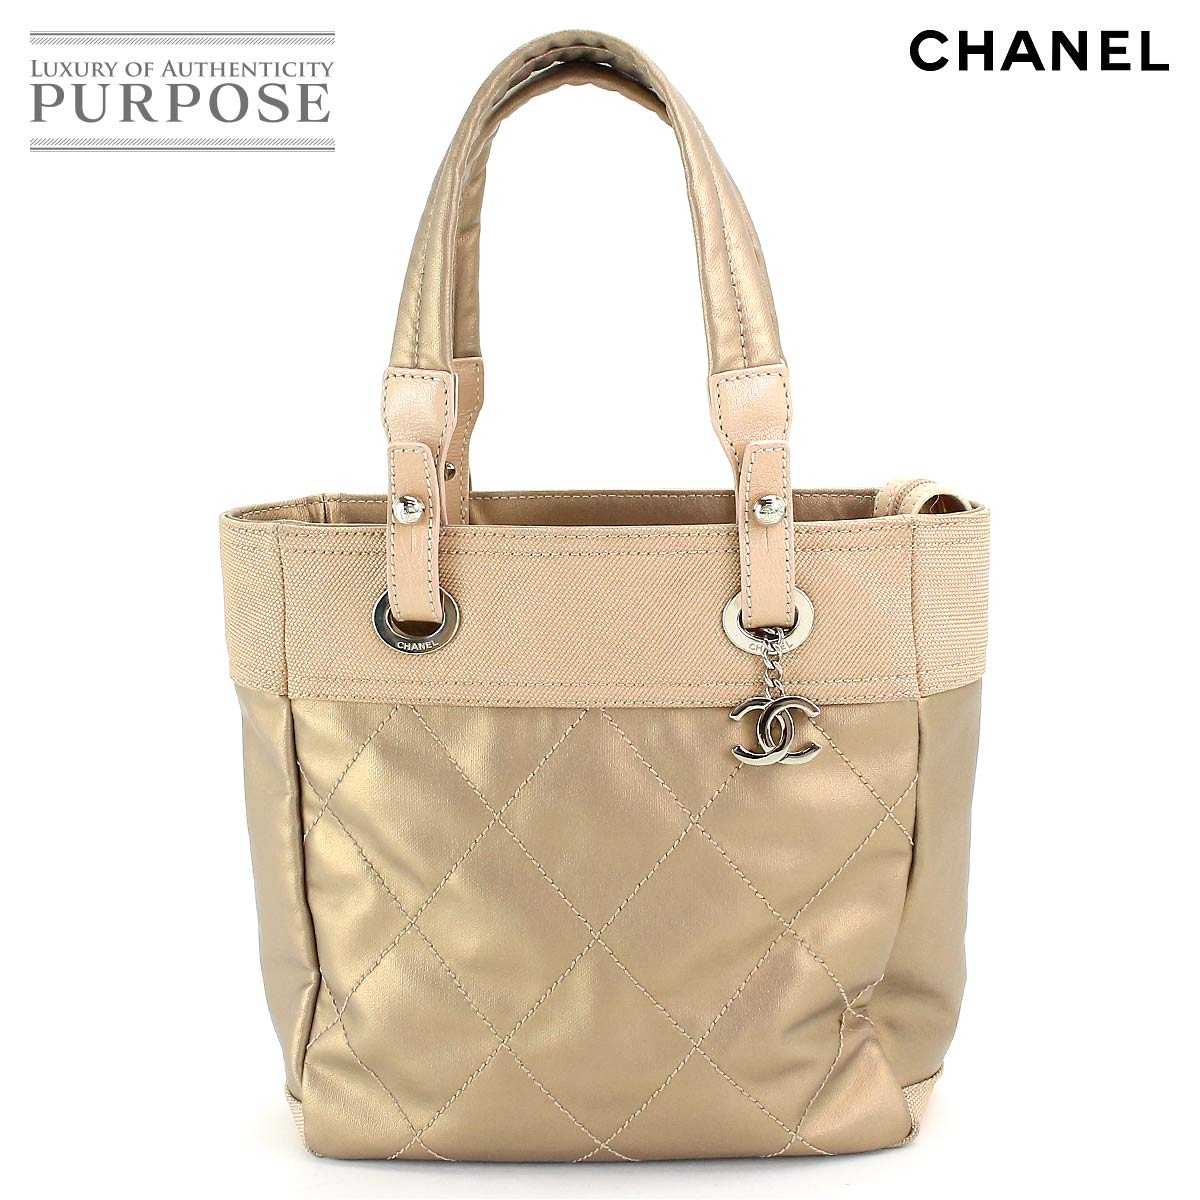 ea7c7103ec Chanel CHANEL Paris Biarritz PM tote bag gold leather canvas A34208